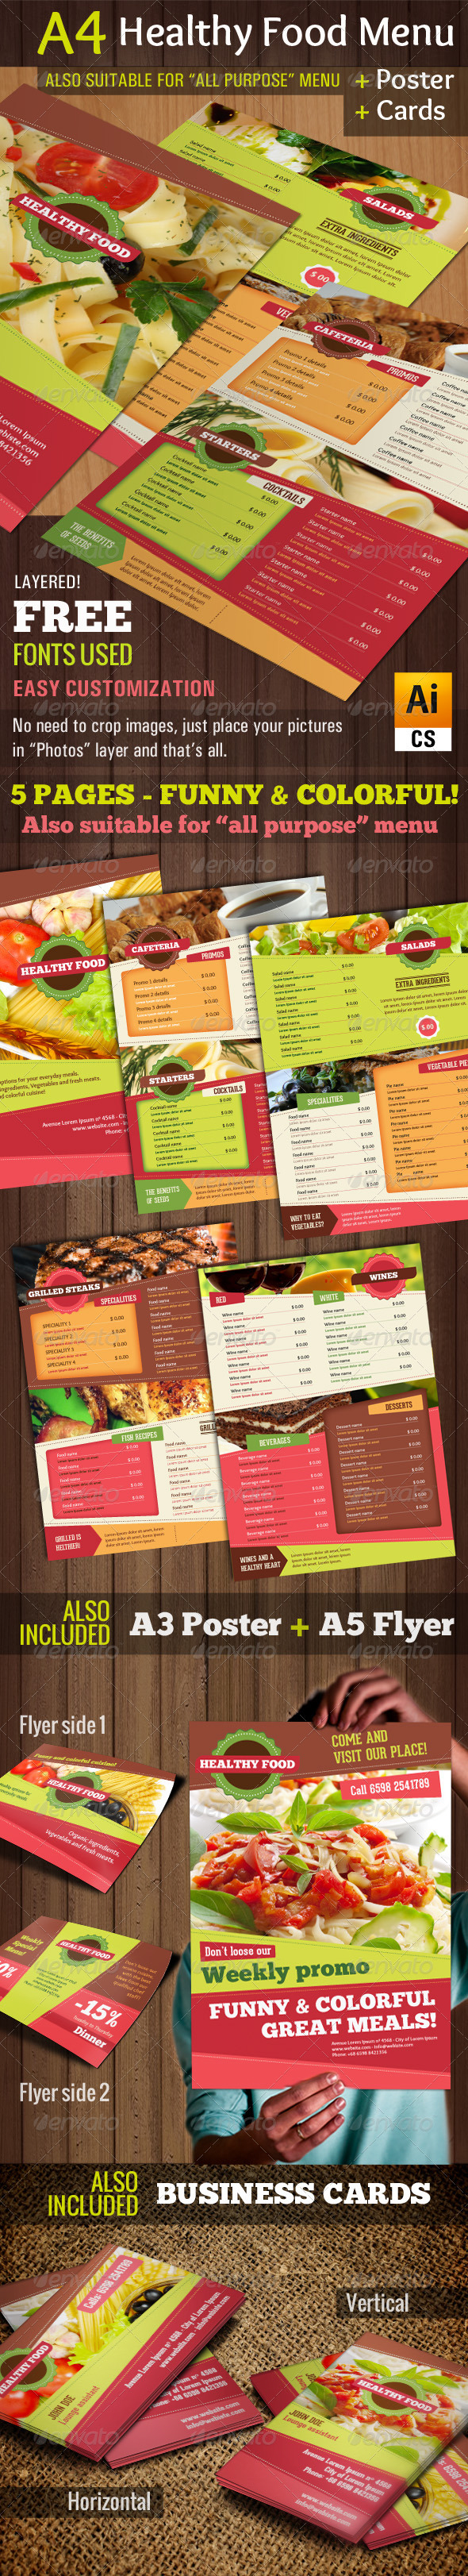 A4 Healthy Food Menu + Poster + Flyer + Cards - Food Menus Print Templates